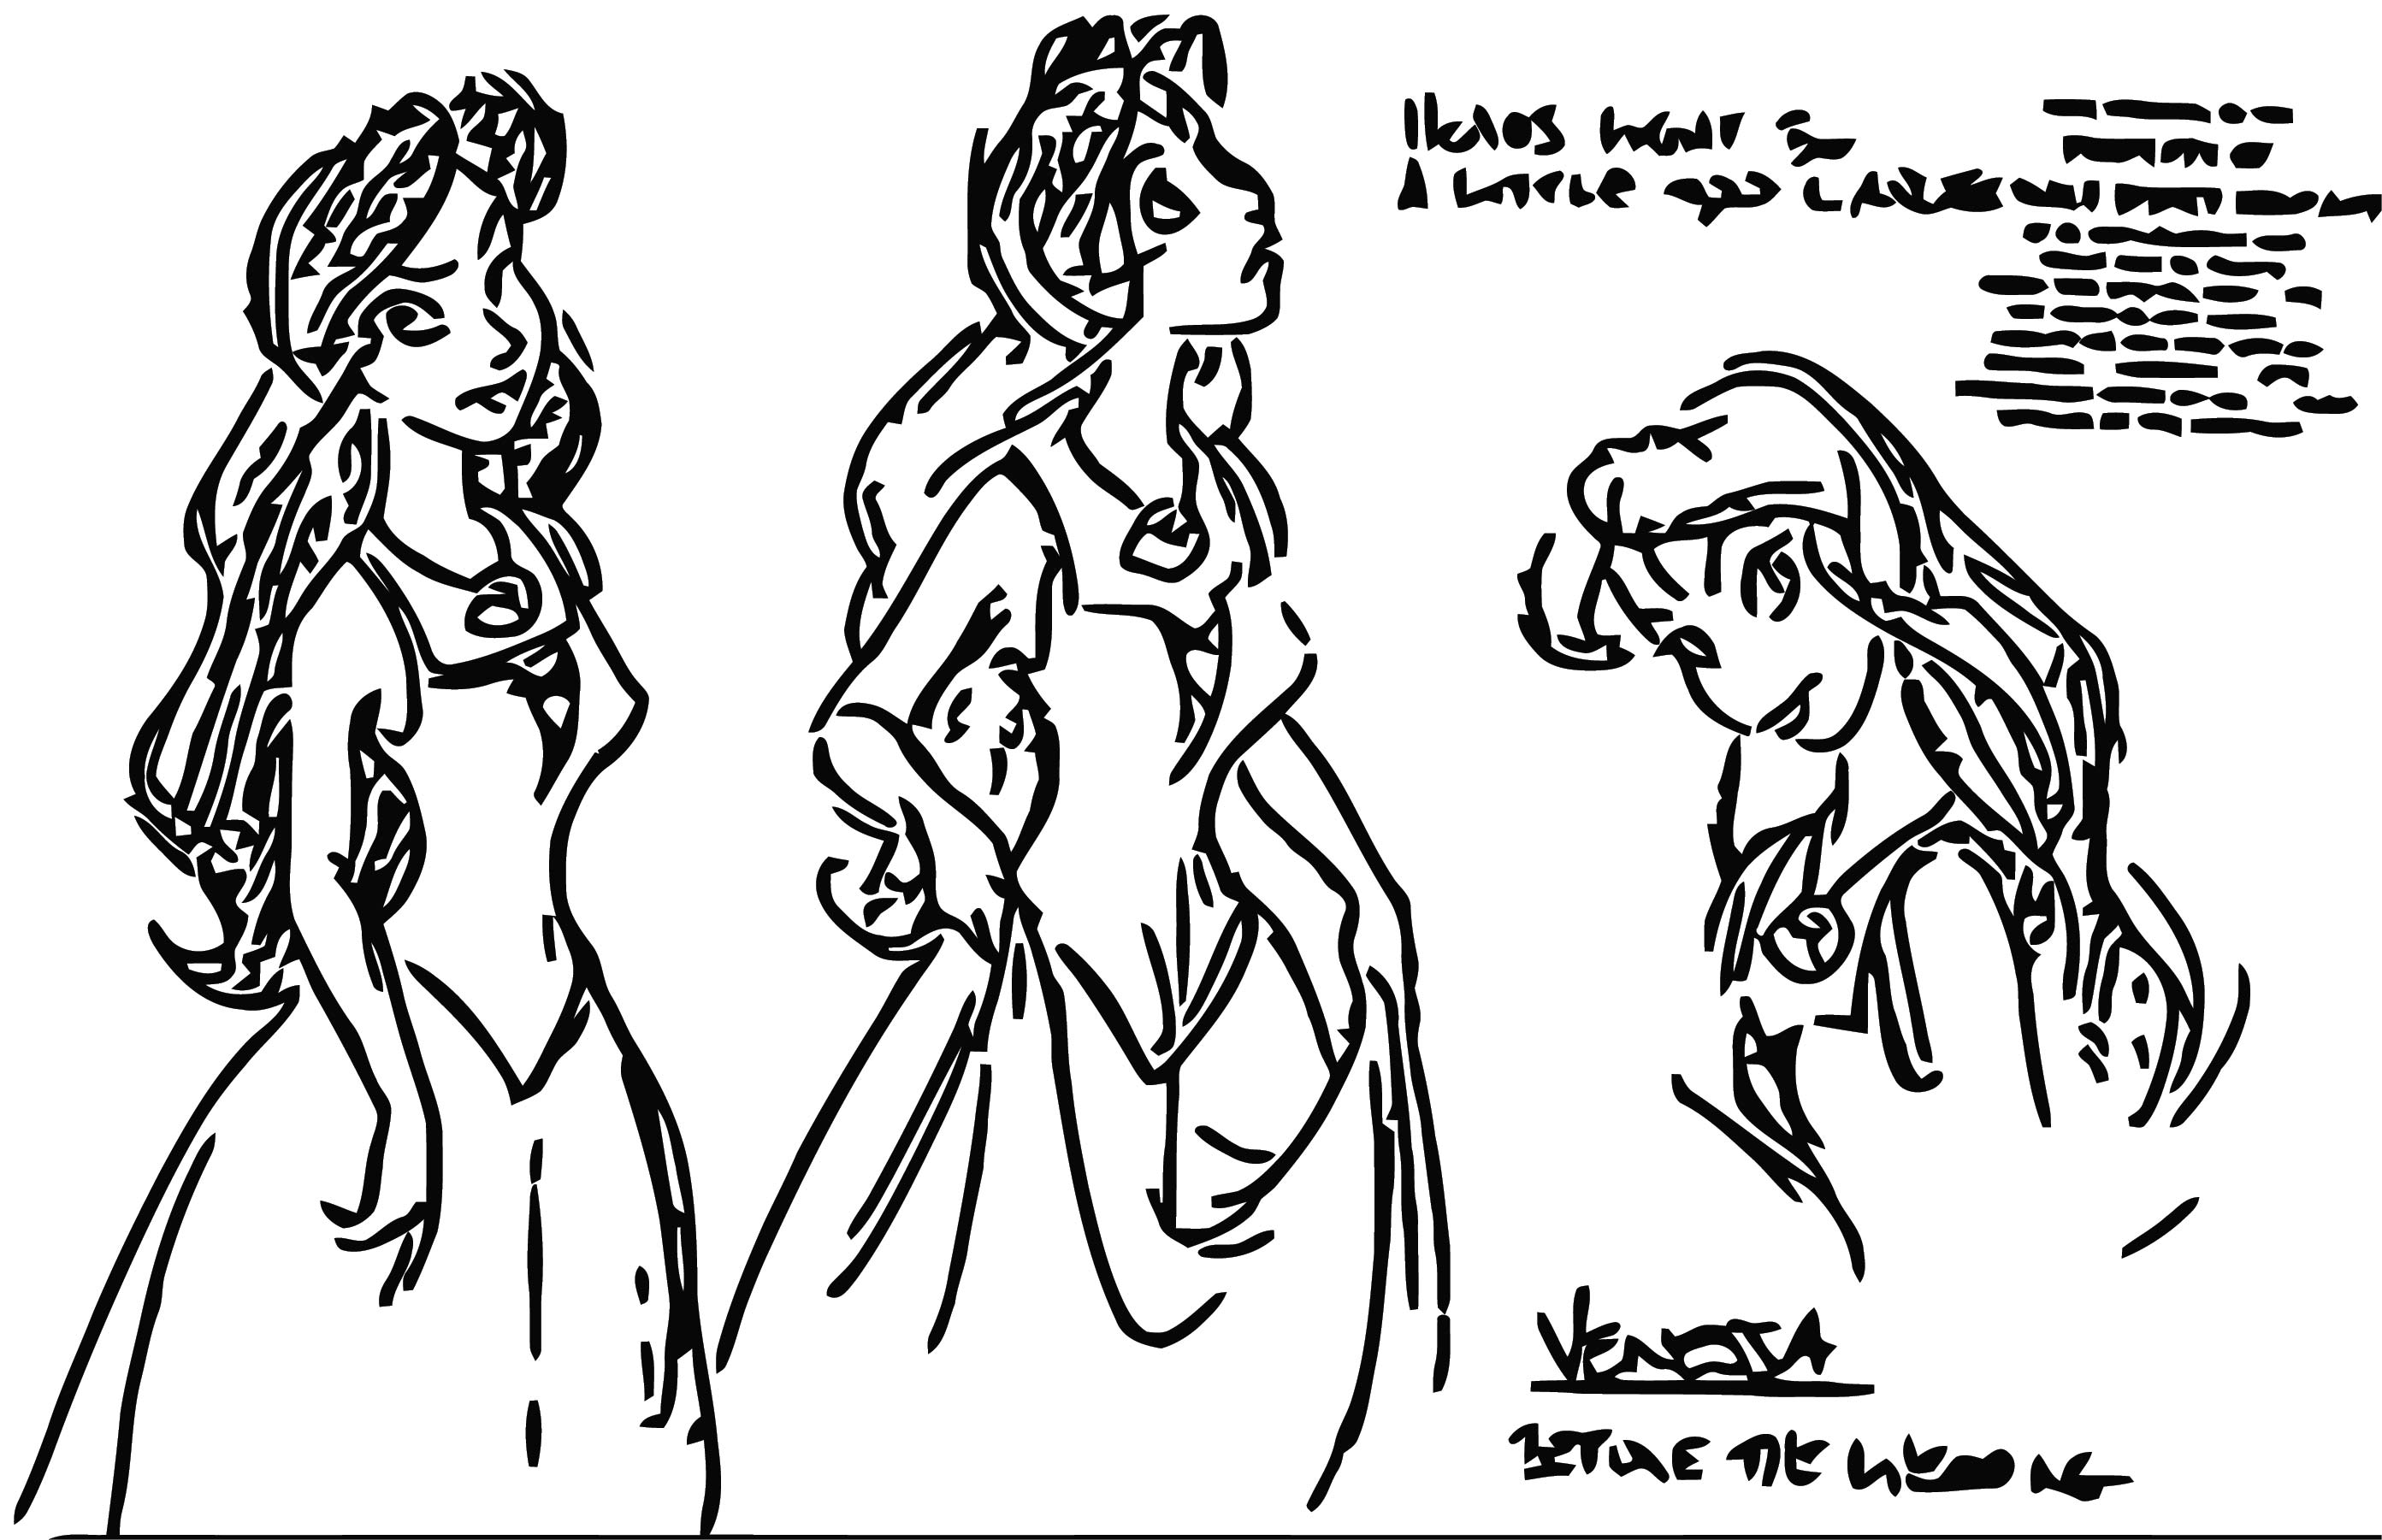 Vanessa Before The Wedding Character Design The Little Mermaid 18835940 742 481 Cartoonize Coloring Page